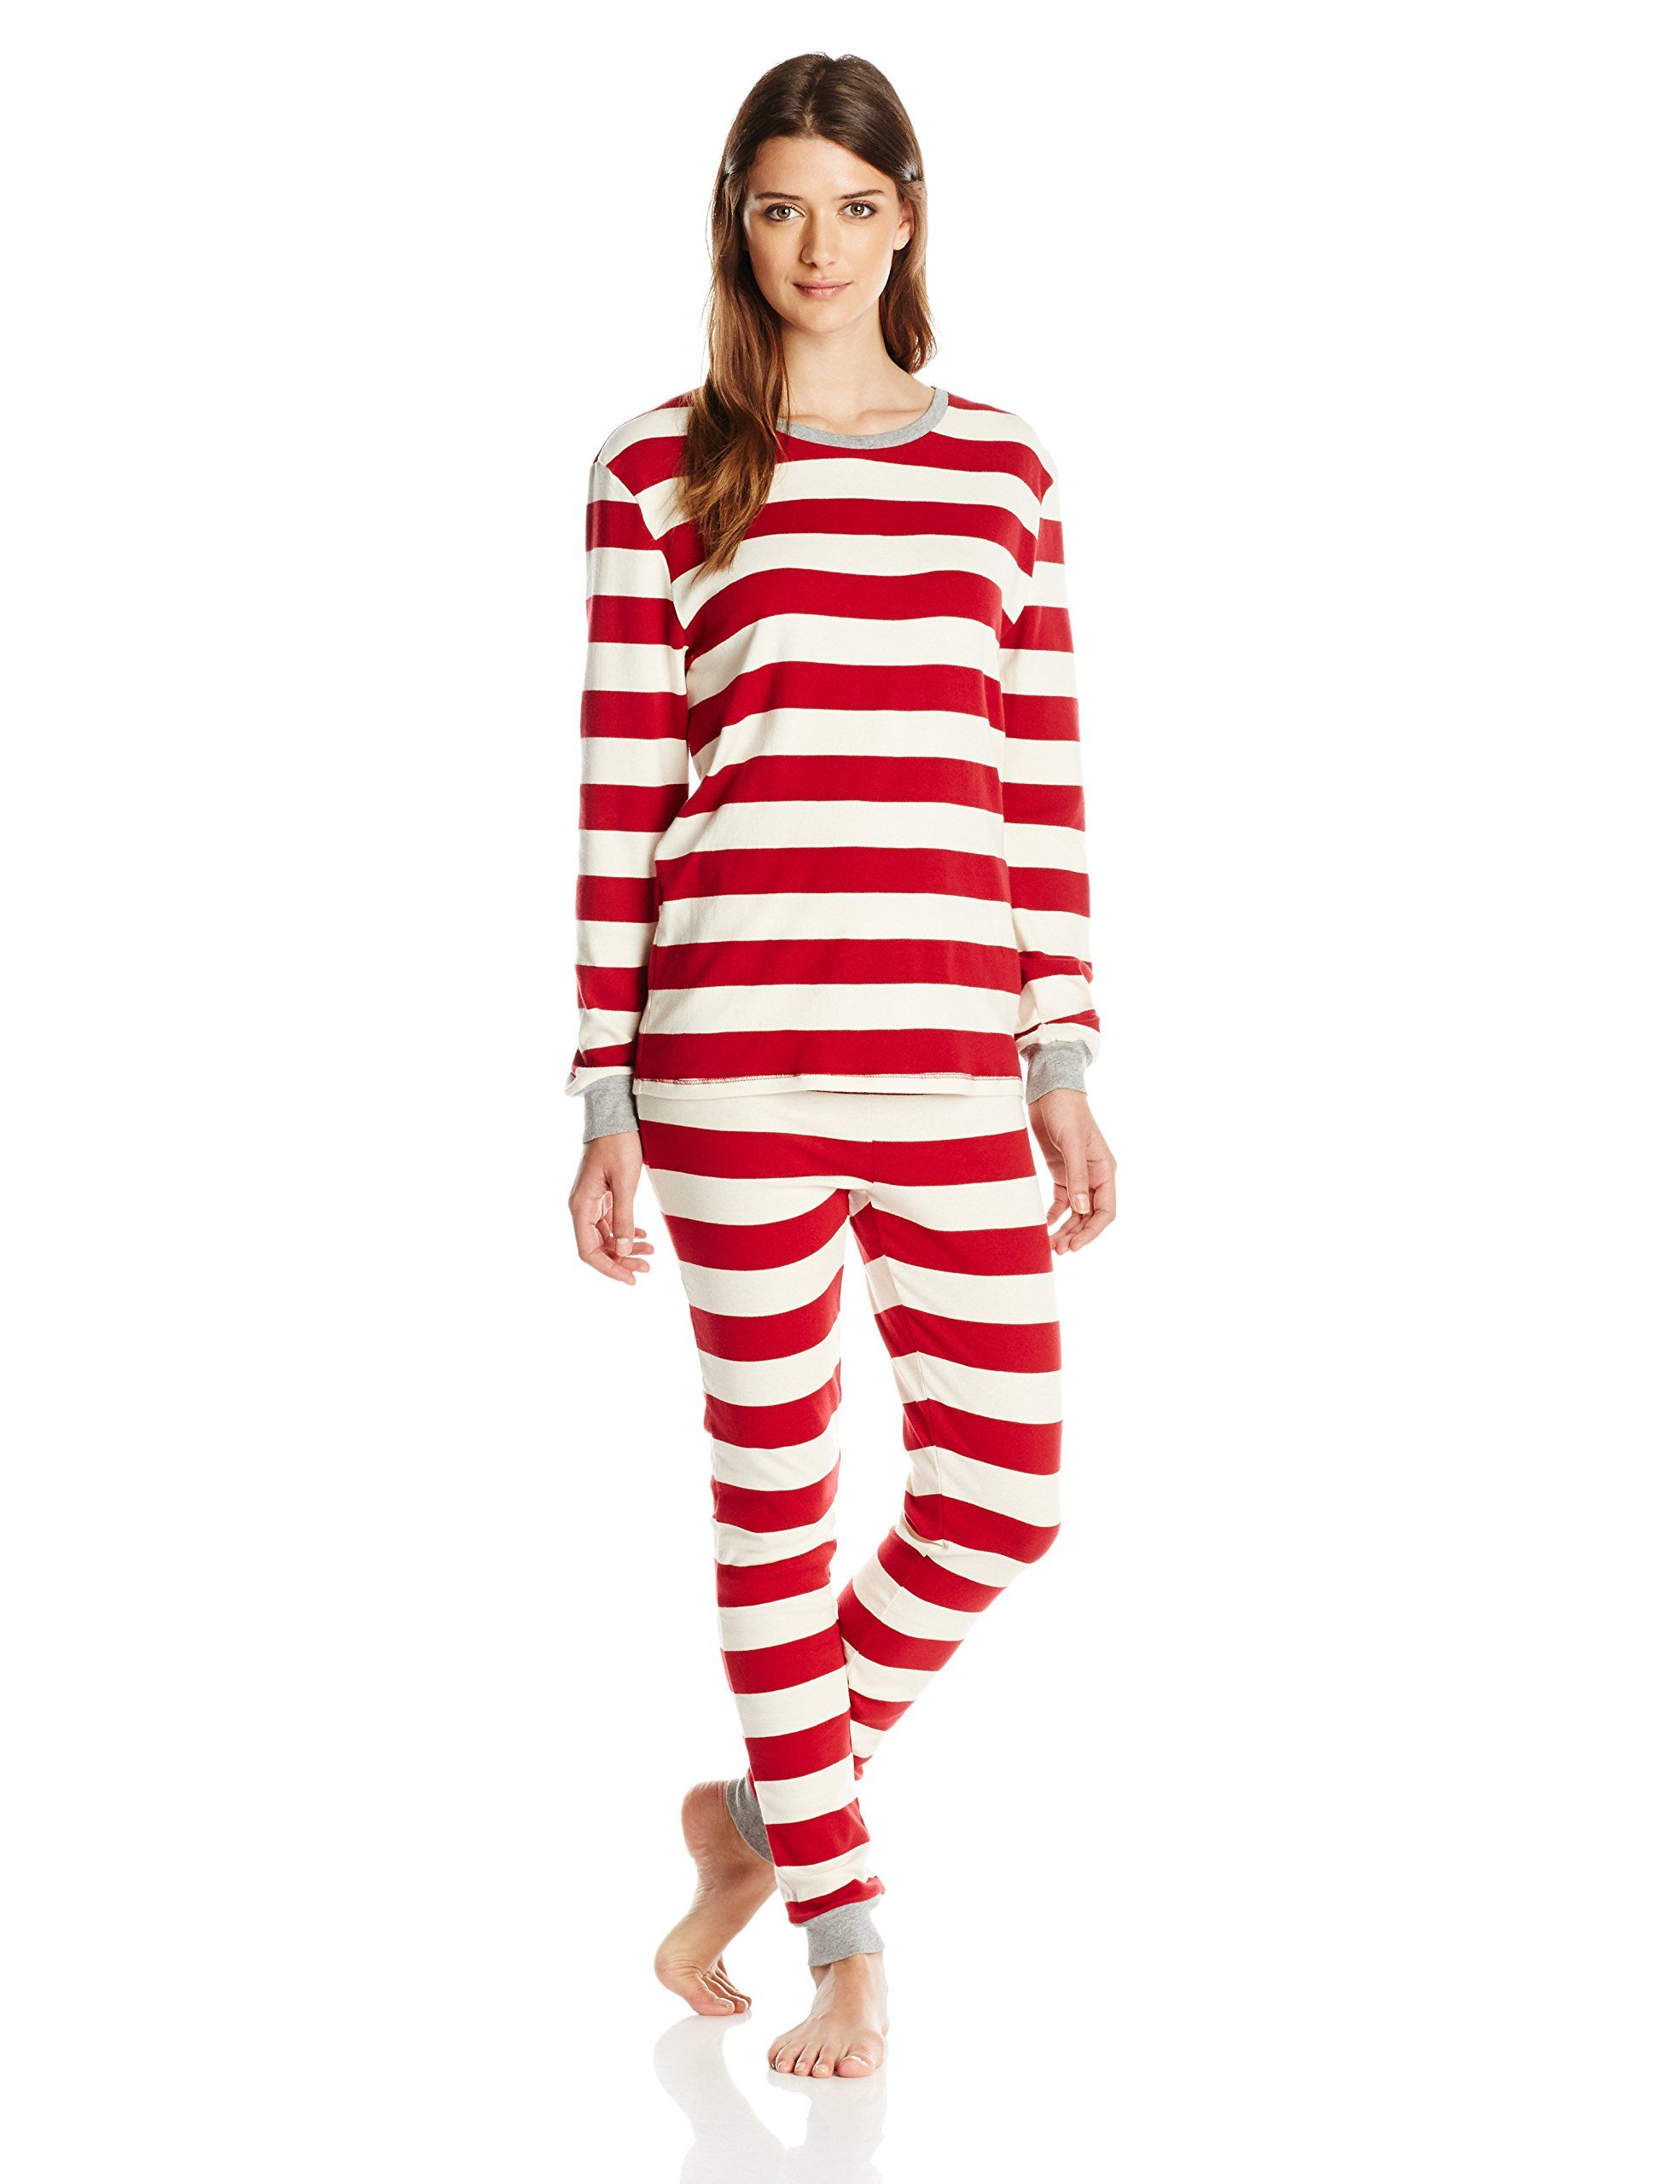 a6a62fed4d Burt's Bees Women's Sleepwear Women's Adult Cotton Pajama Set, Cranberry  Rugby Stripe, Large